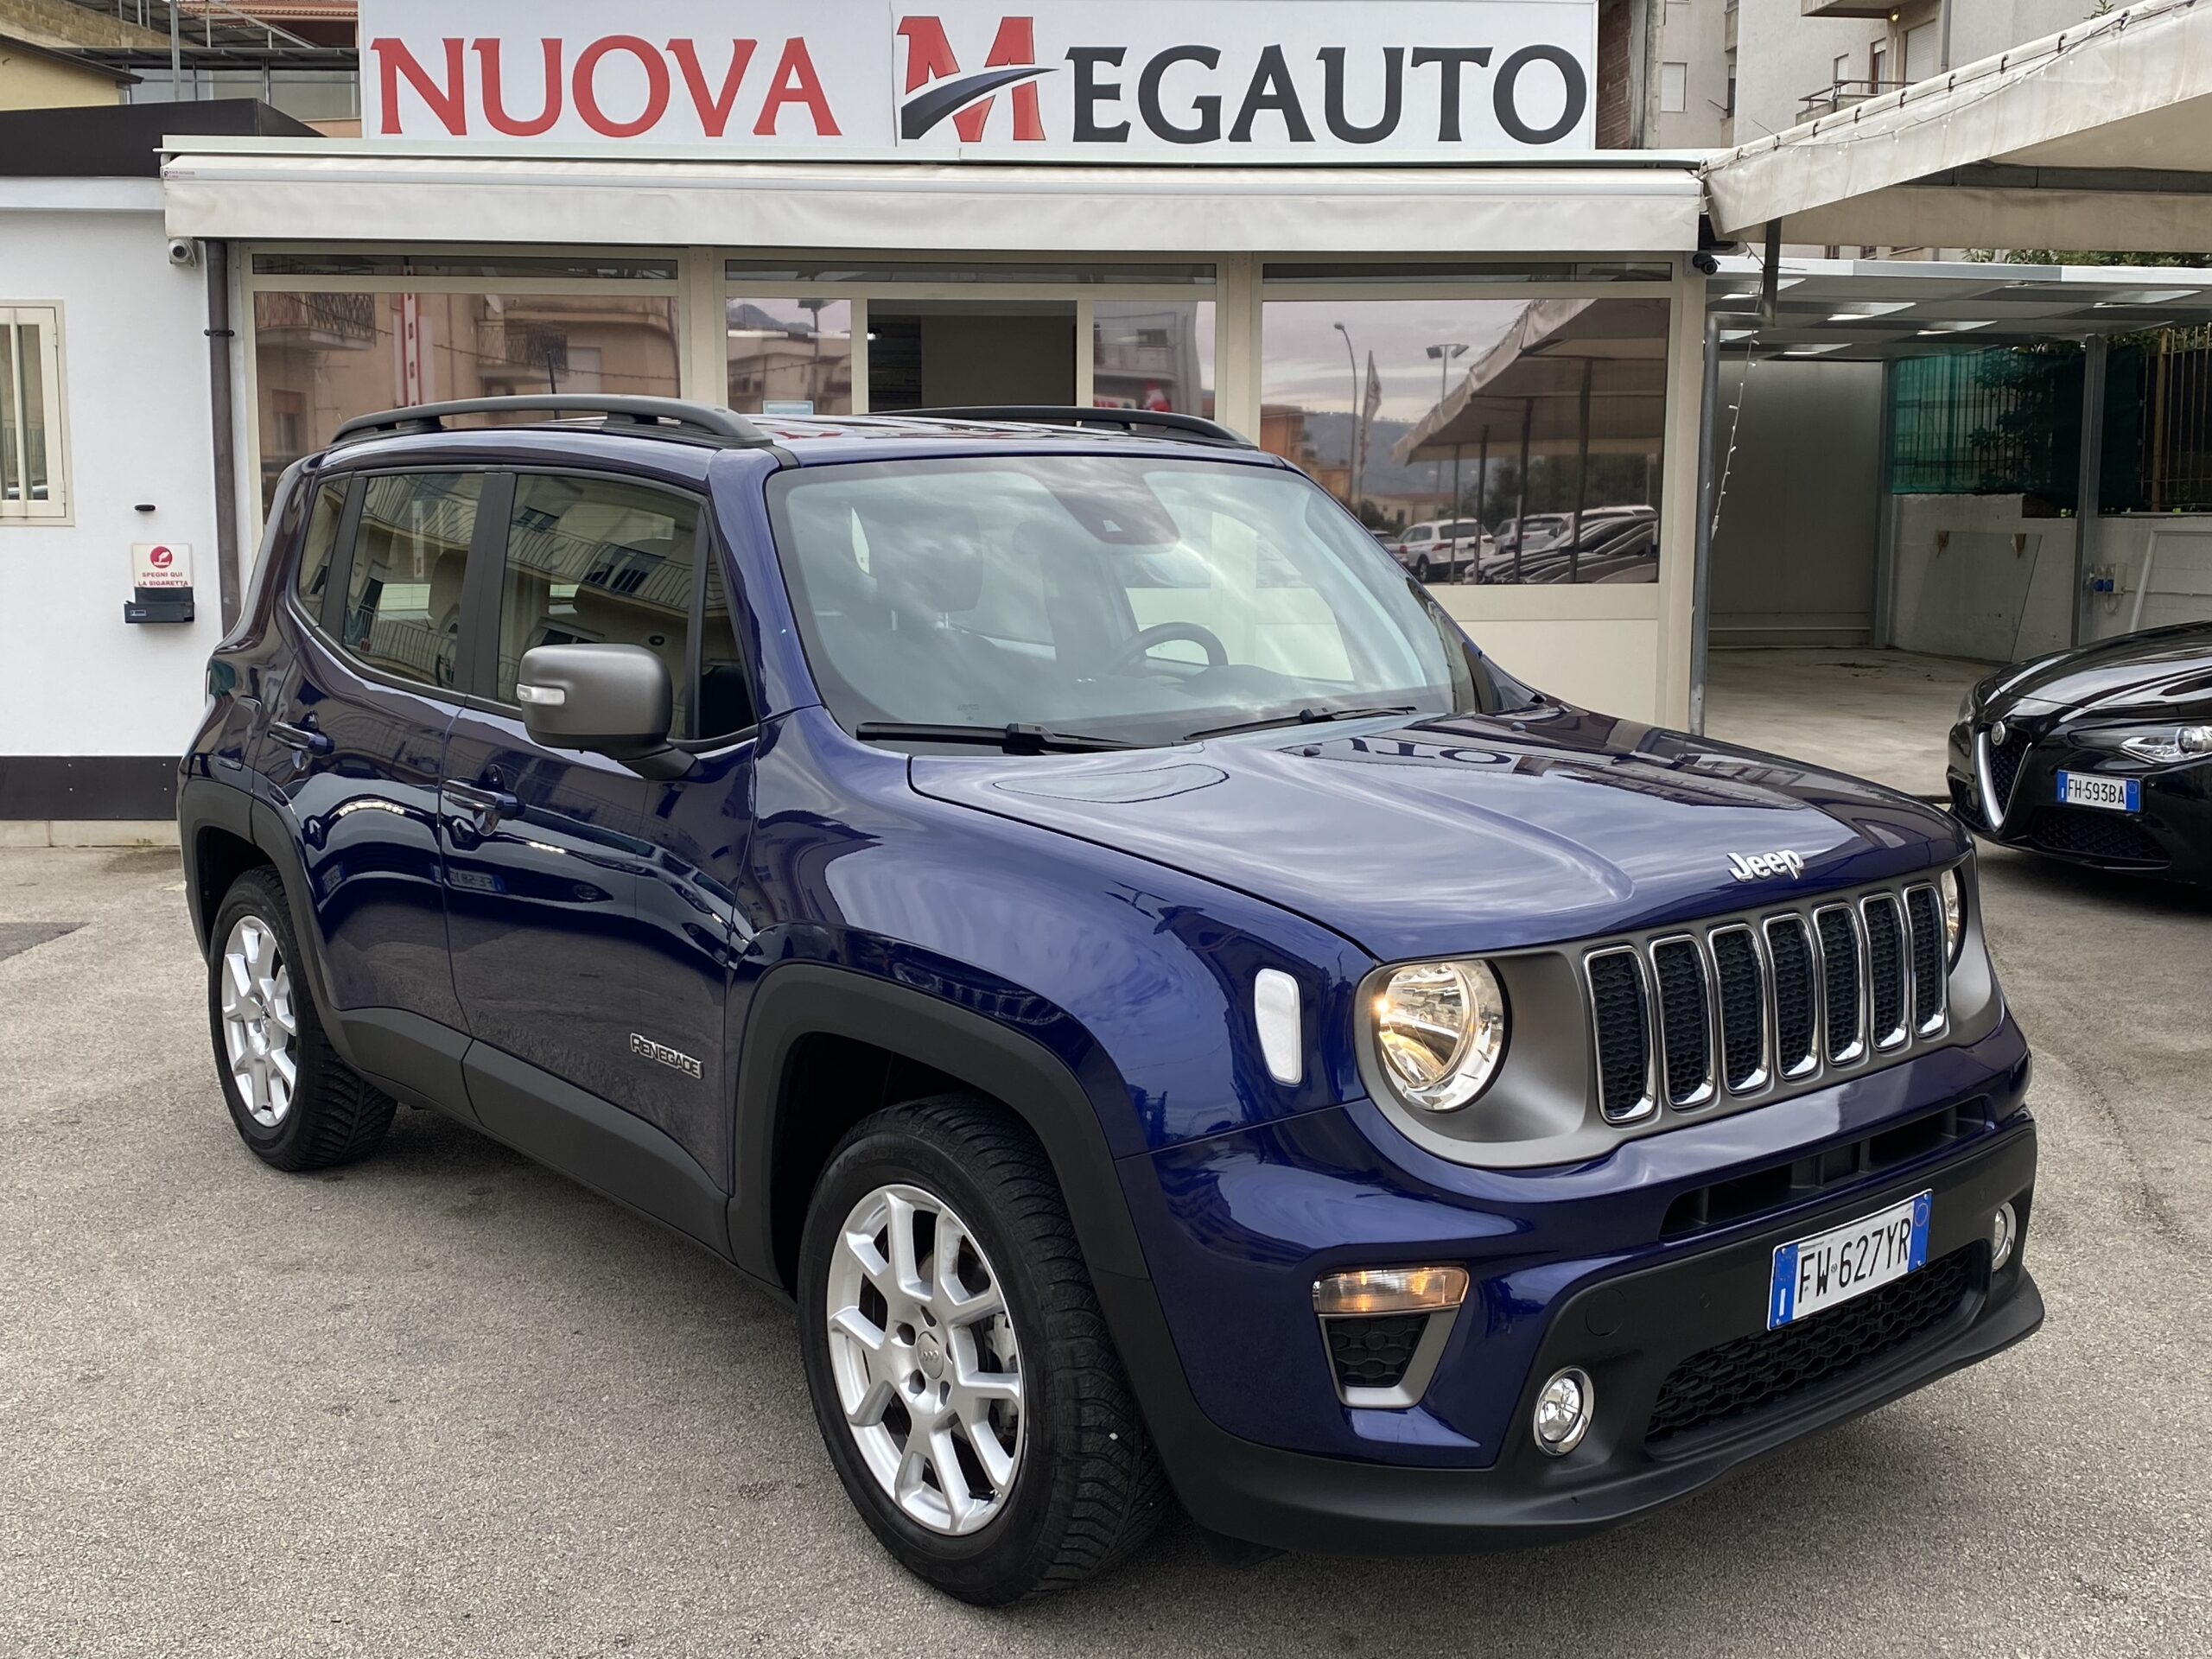 Jeep Renegade 1.6 Mjt 120 CV Limited 19